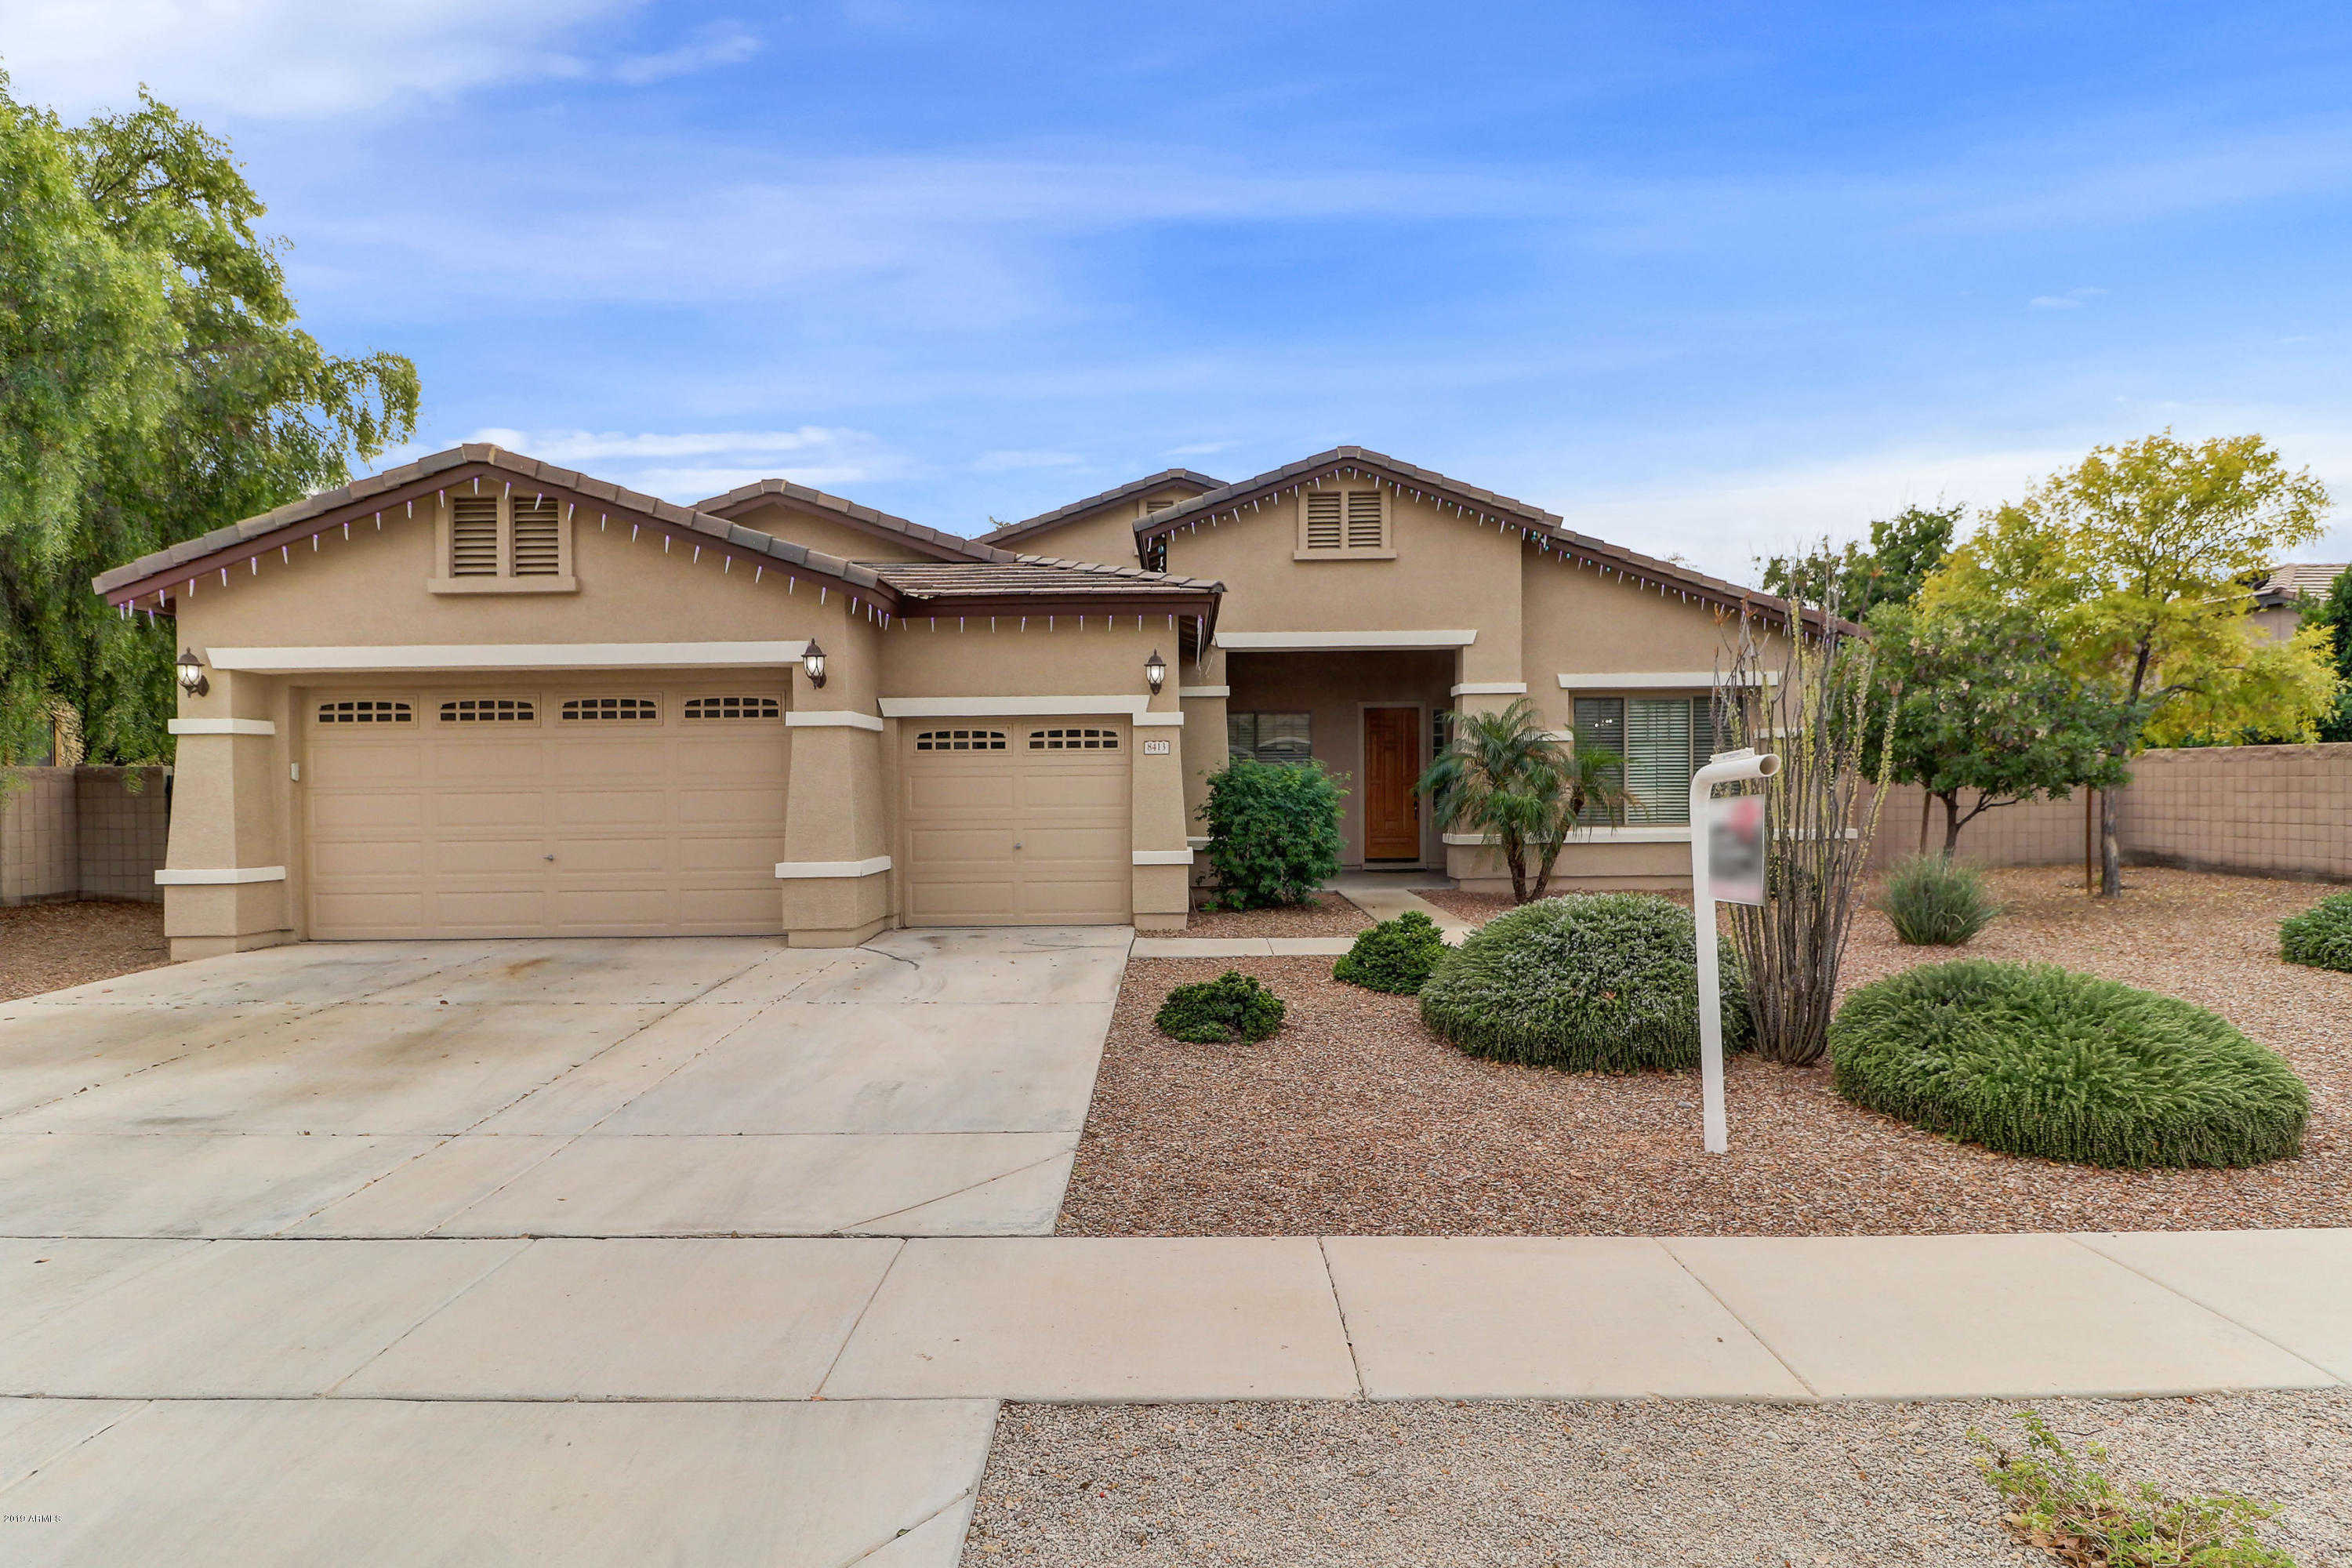 $444,900 - 5Br/3Ba - Home for Sale in Rovey Farm Estates North, Glendale